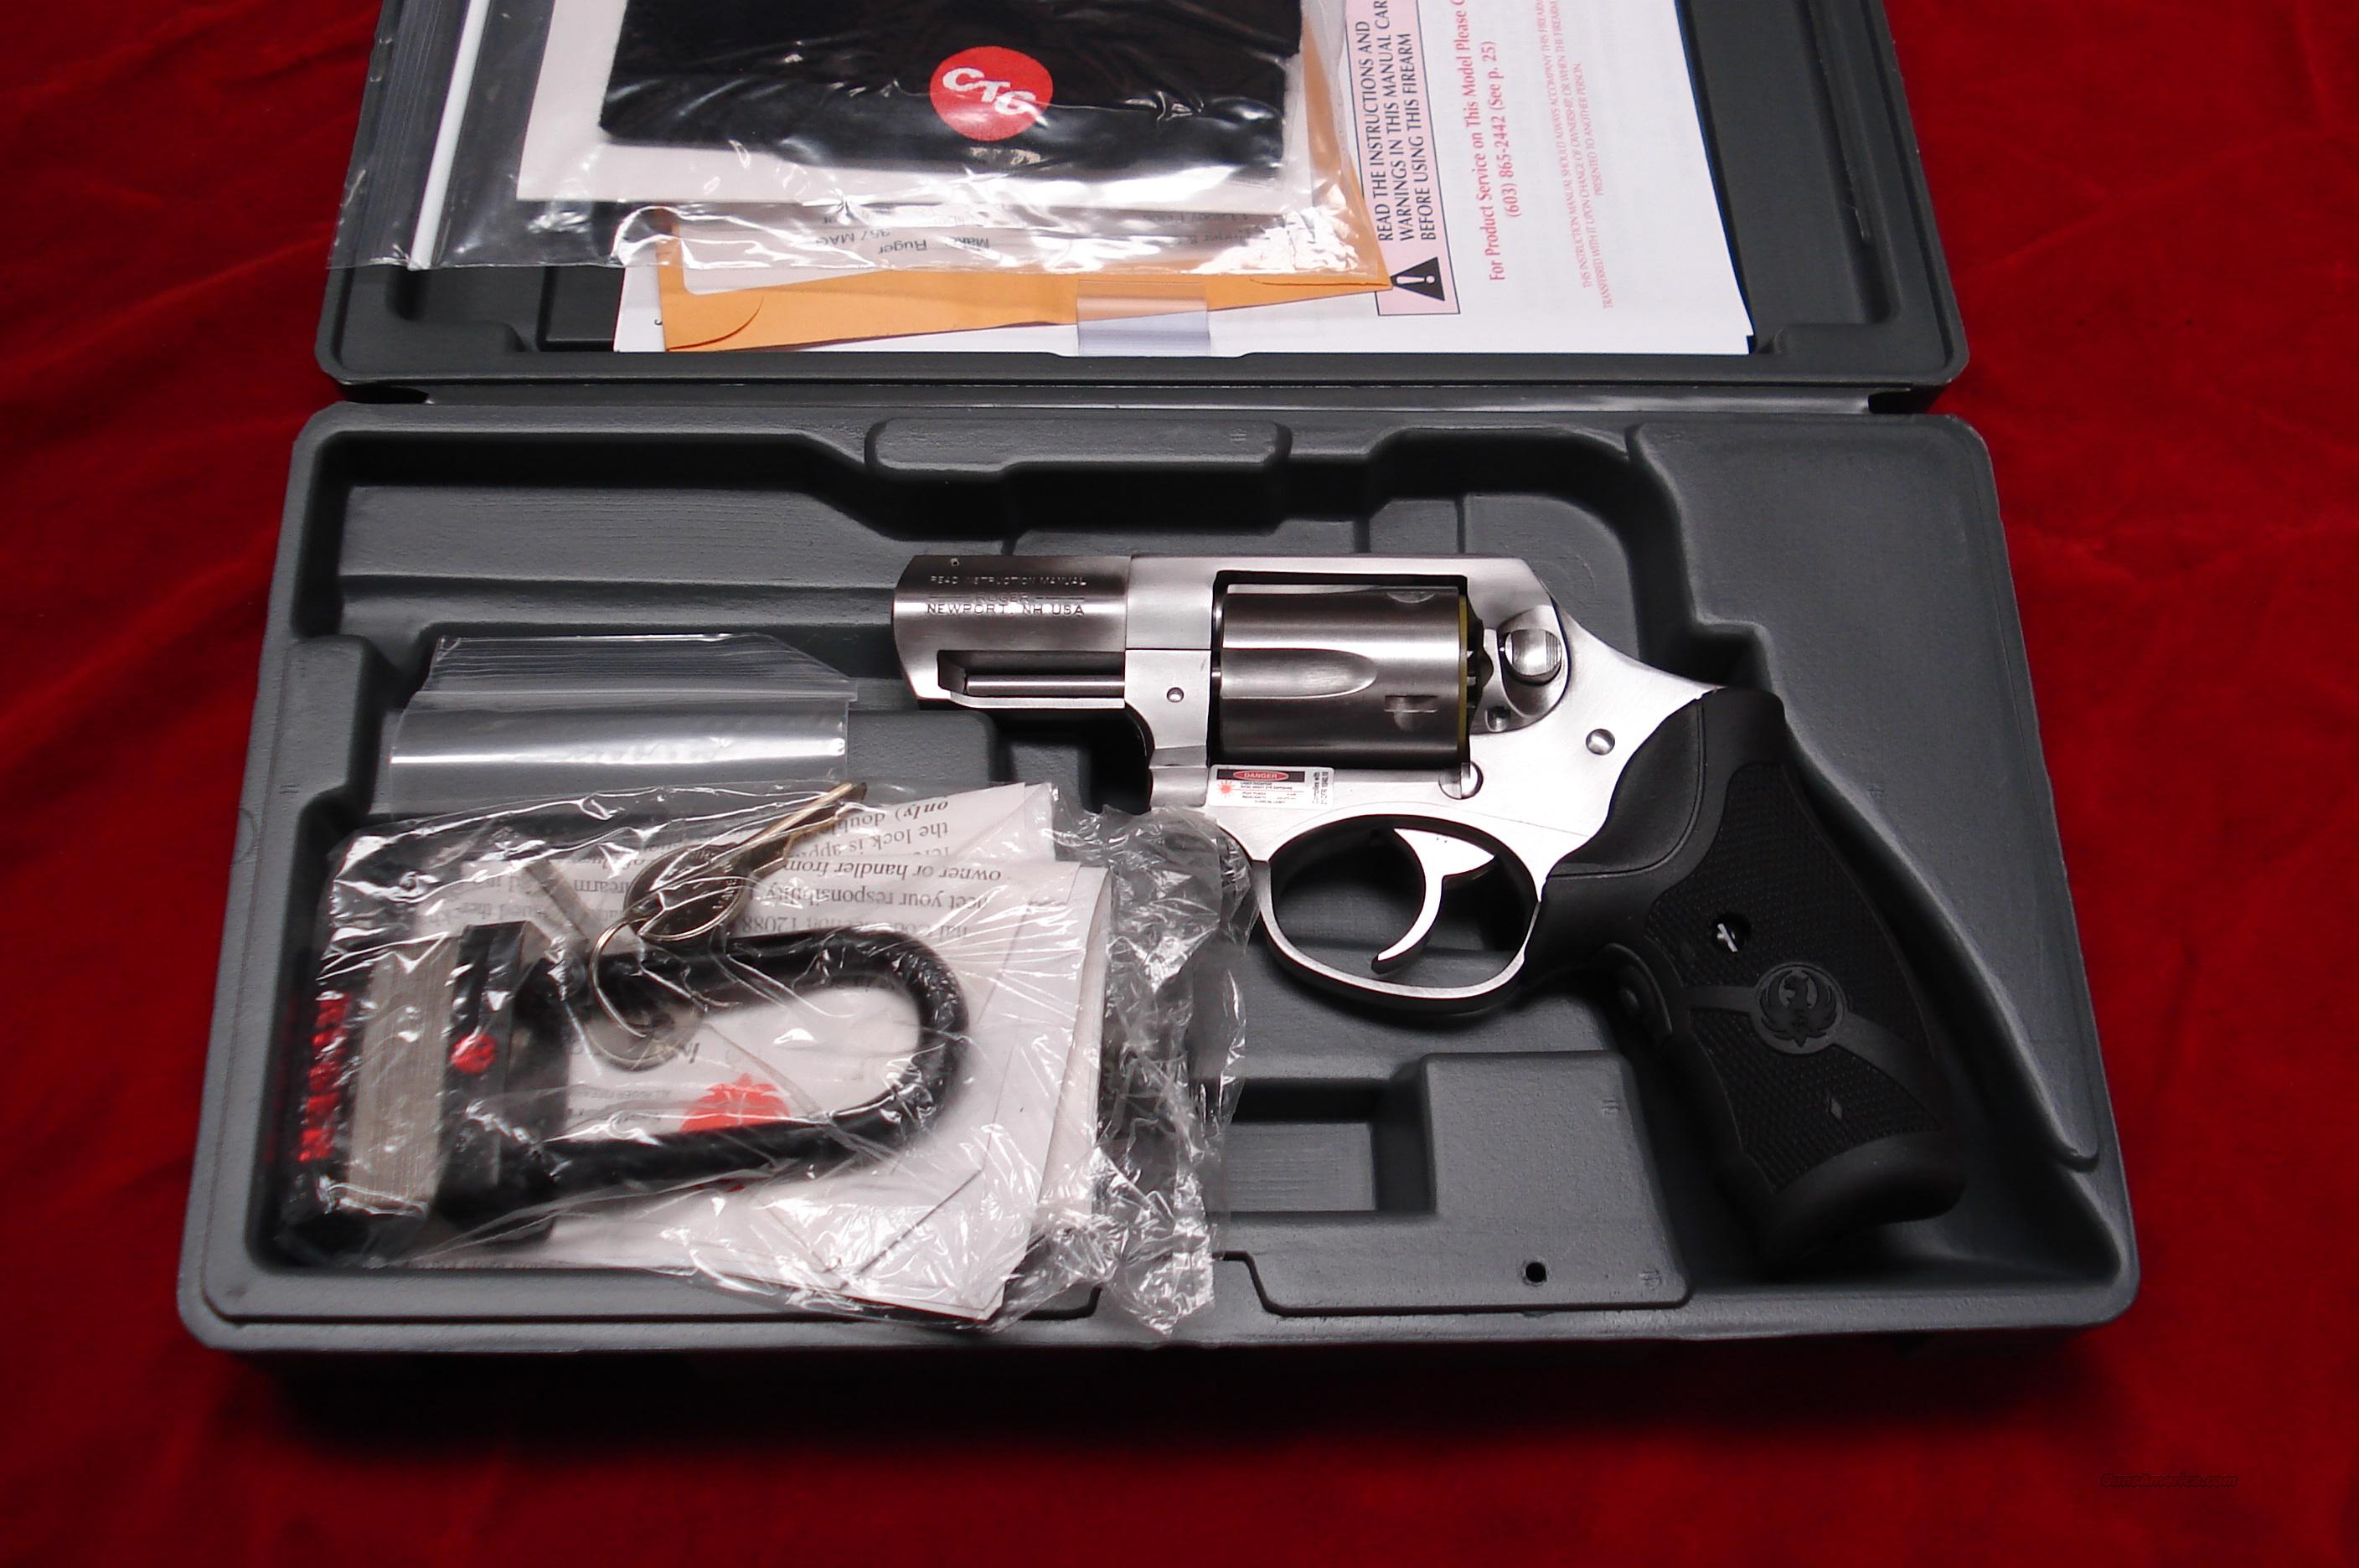 RUGER NEW SP101 357CAL. W/CRIMSON TRACE LASER GRIPS NEW   (KSP-321XL-LG)  Guns > Pistols > Ruger Double Action Revolver > SP101 Type